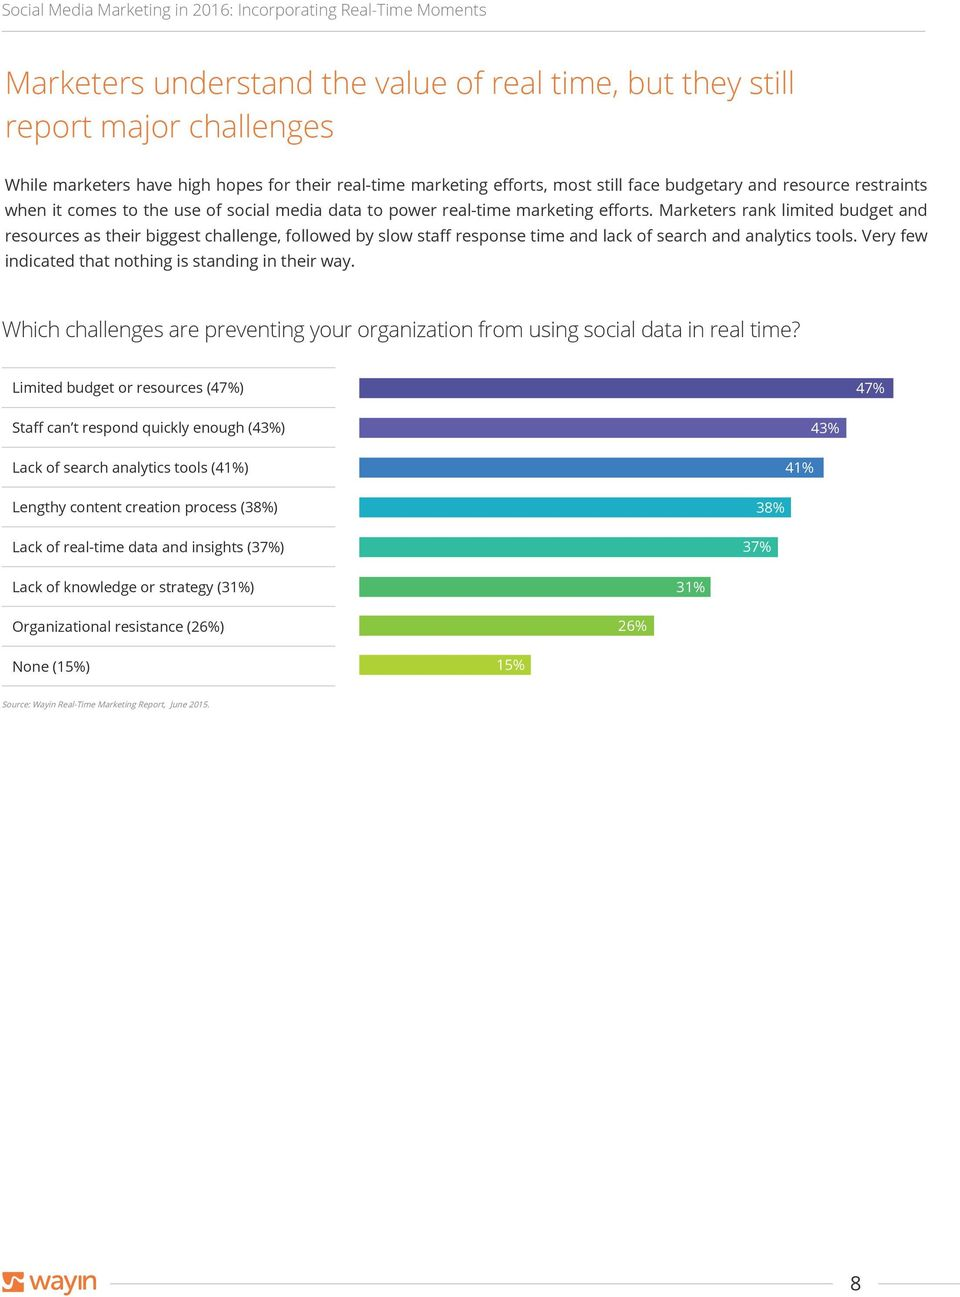 Marketers rank limited budget and resources as their biggest challenge, followed by slow staff response time and lack of search and analytics tools.